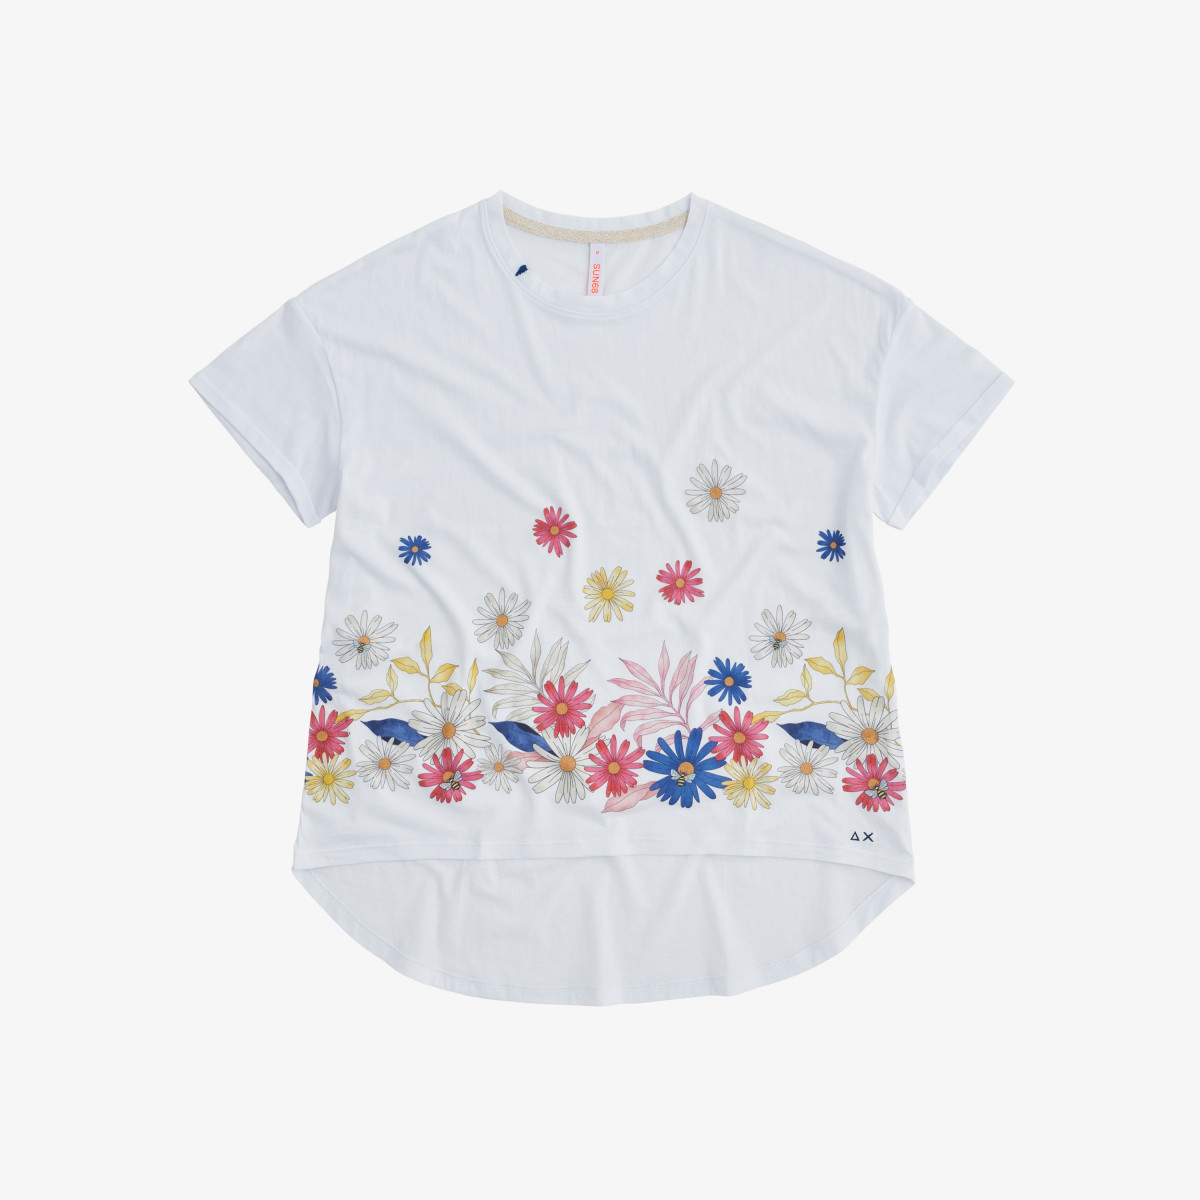 ROUND T-SHIRT PRINT CHEST S/S WHITE